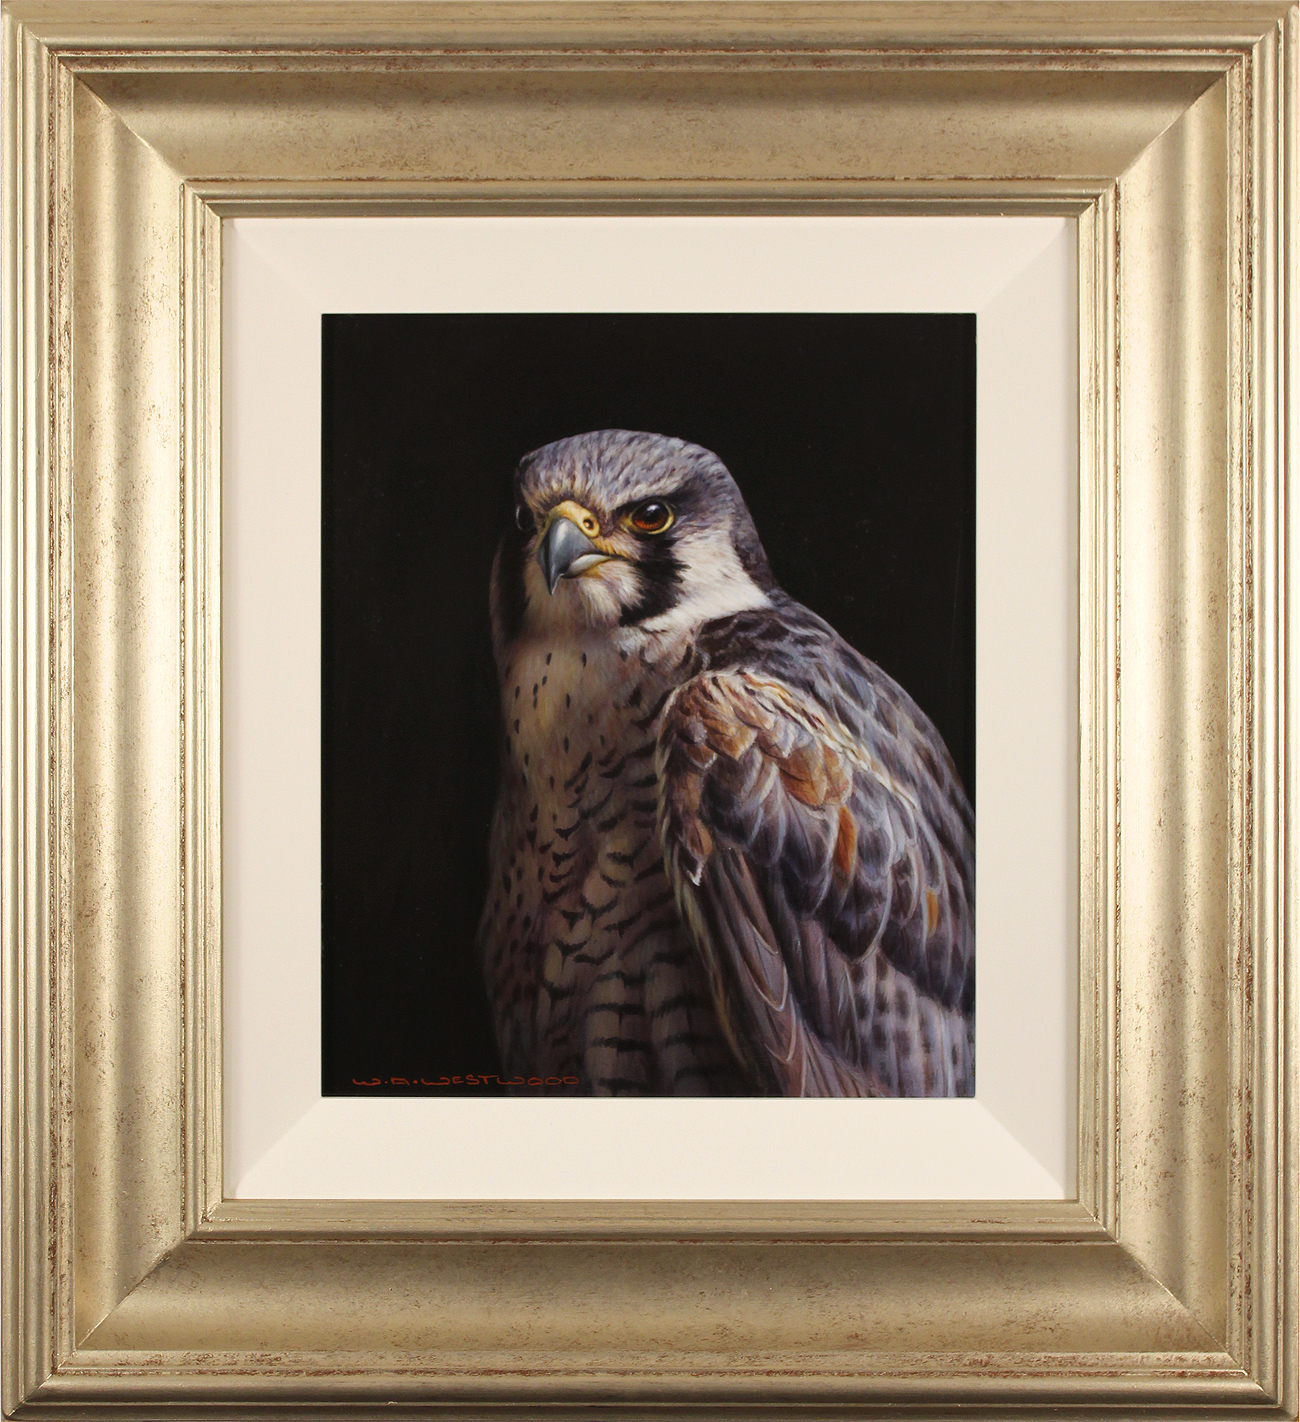 Wayne Westwood, Original oil painting on panel, Peregrine Falcon. Click to enlarge